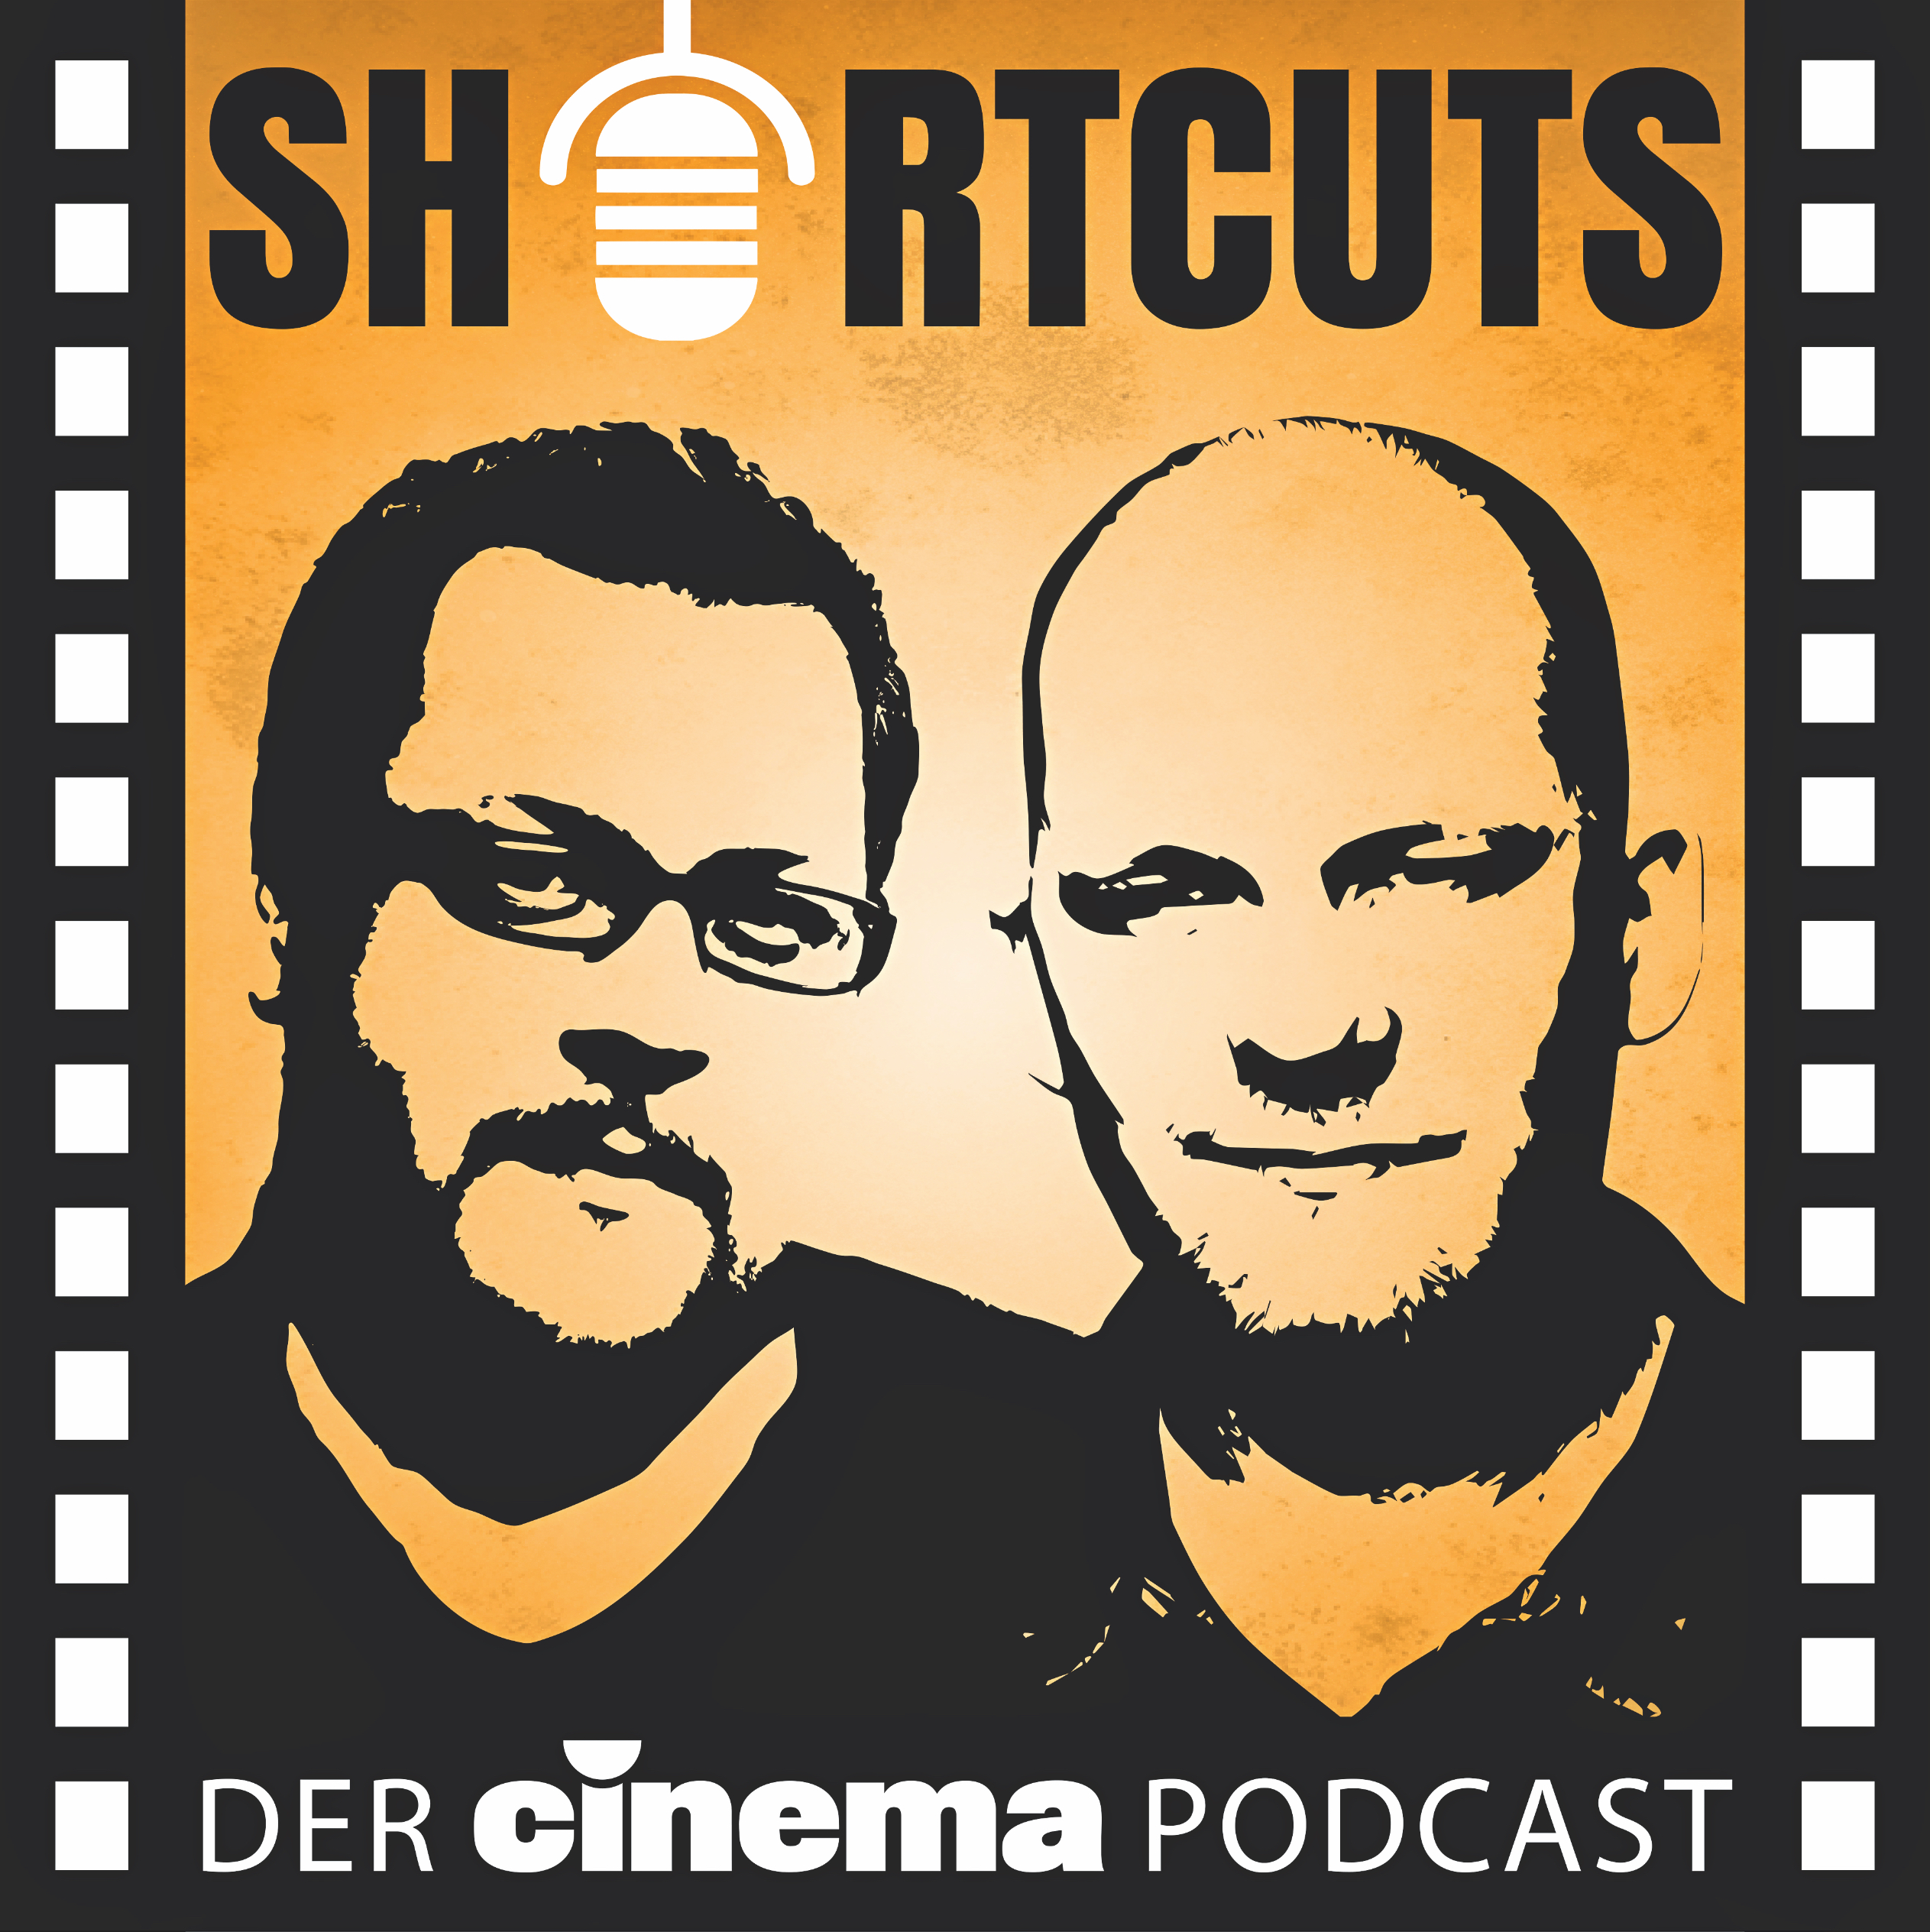 Grosse Kino-Vorschau Ende 2018 plus The Meg, Mission Impossible 6, Streaming-Tipps